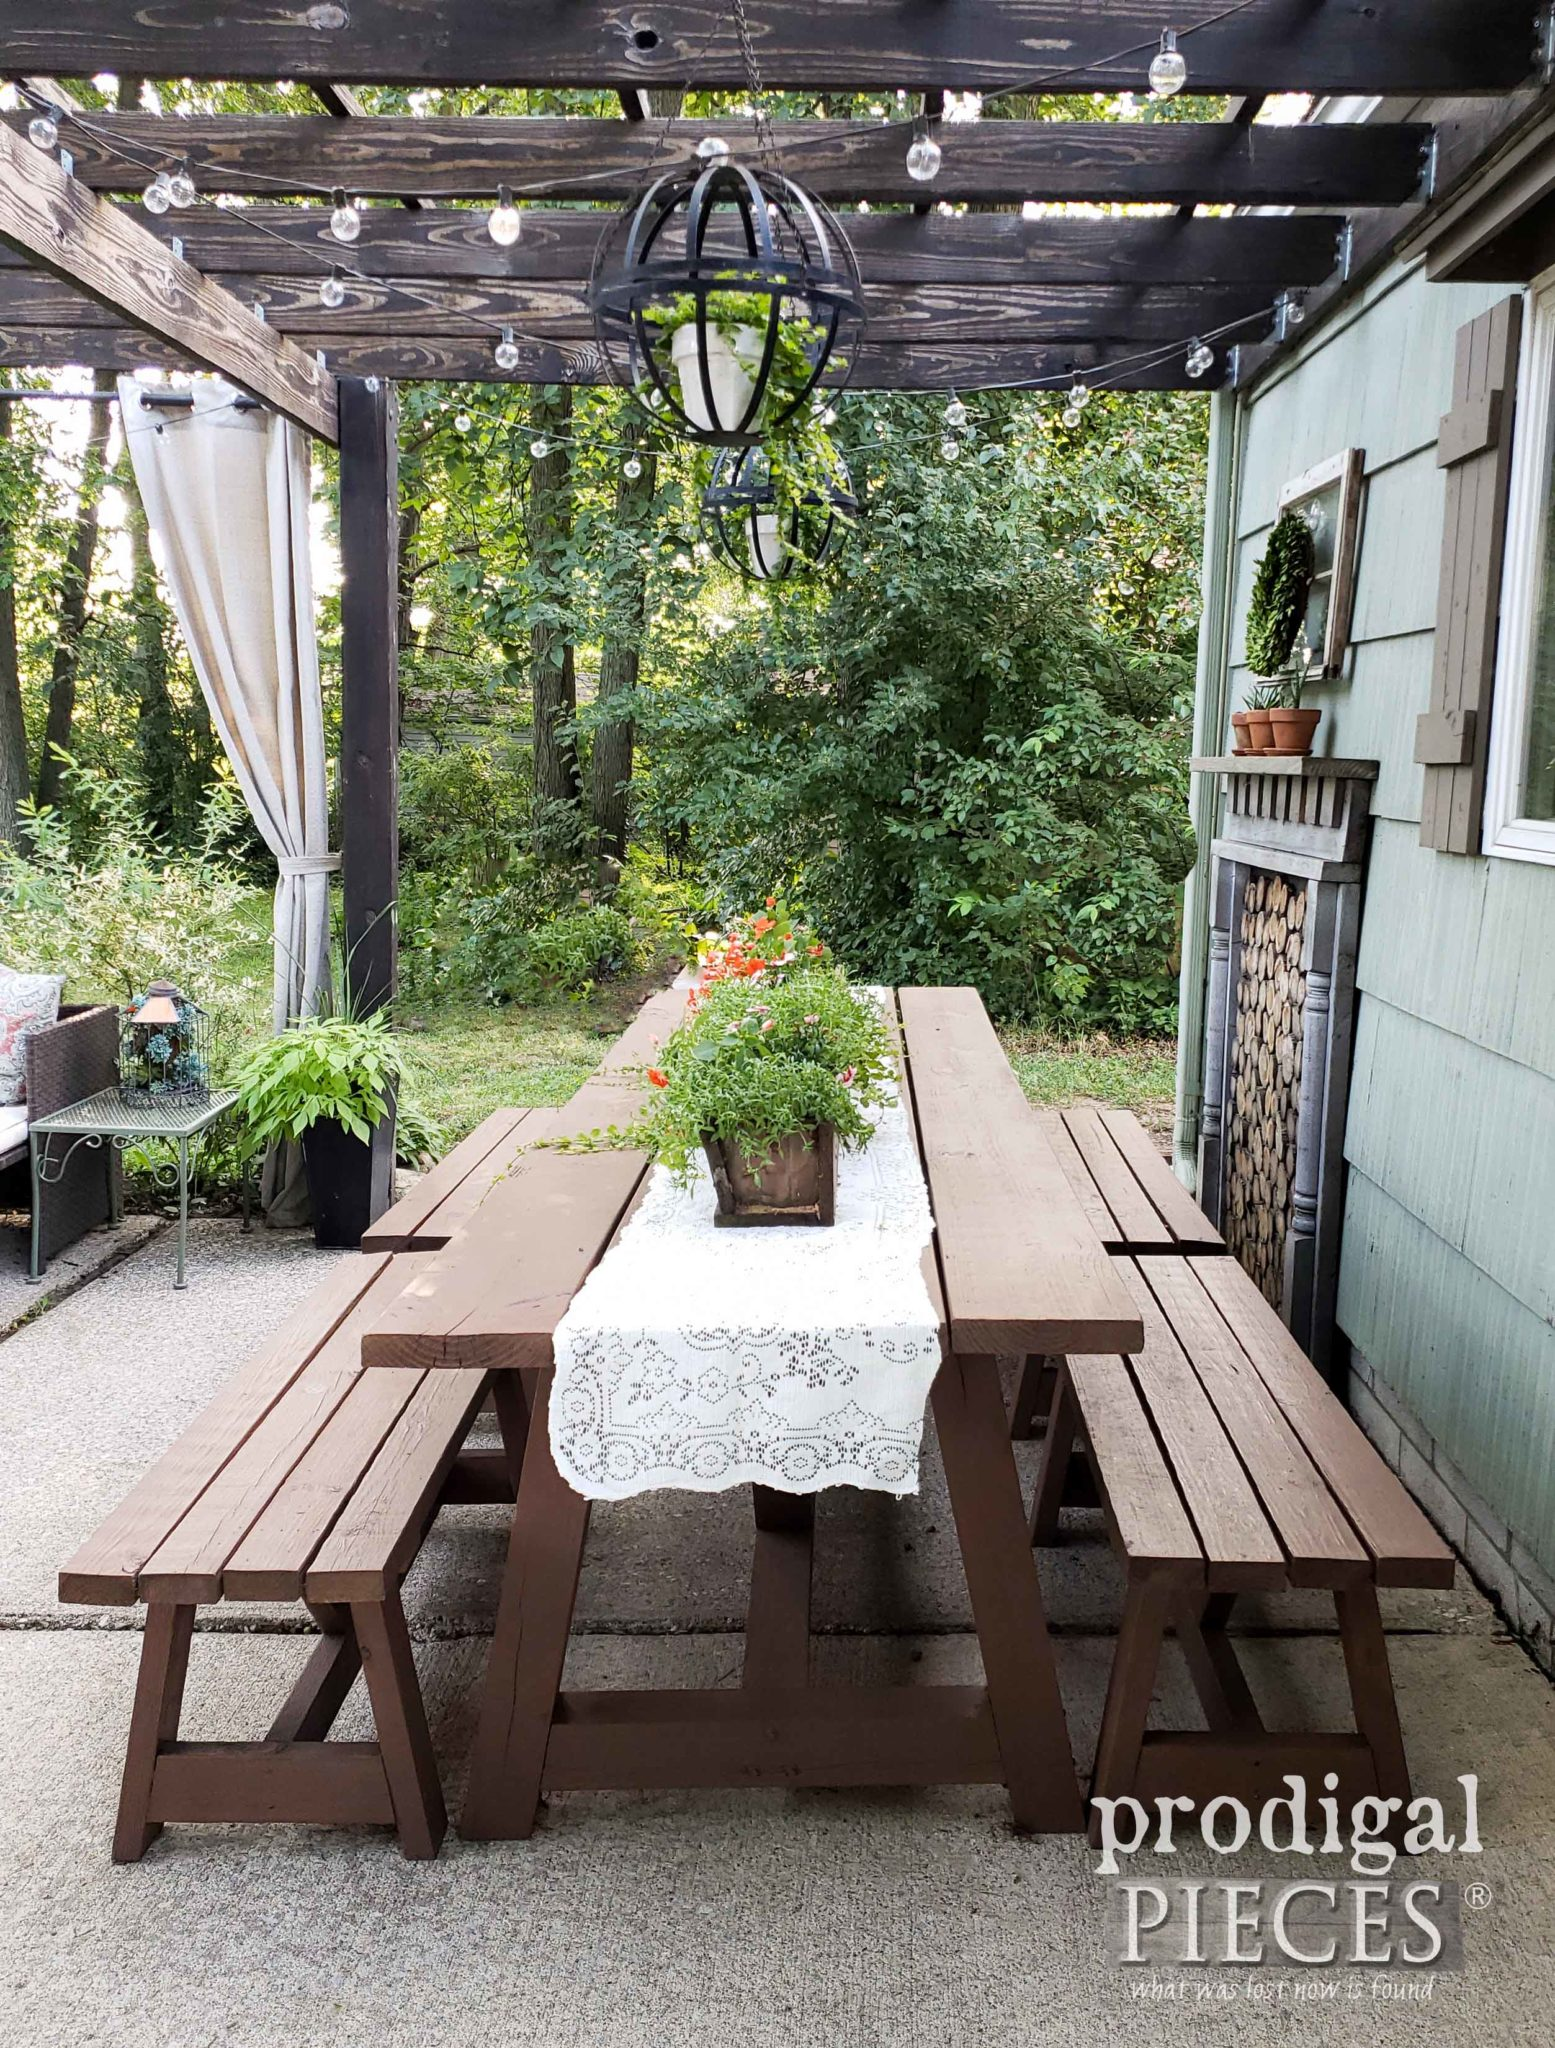 DIY Patio with Updated Outdoor Furniture with Tutorial by Larissa of Prodigal Pieces | prodigalpieces.com #prodigalpieces #diy #outdoor #patio #furniture #home #homedecor